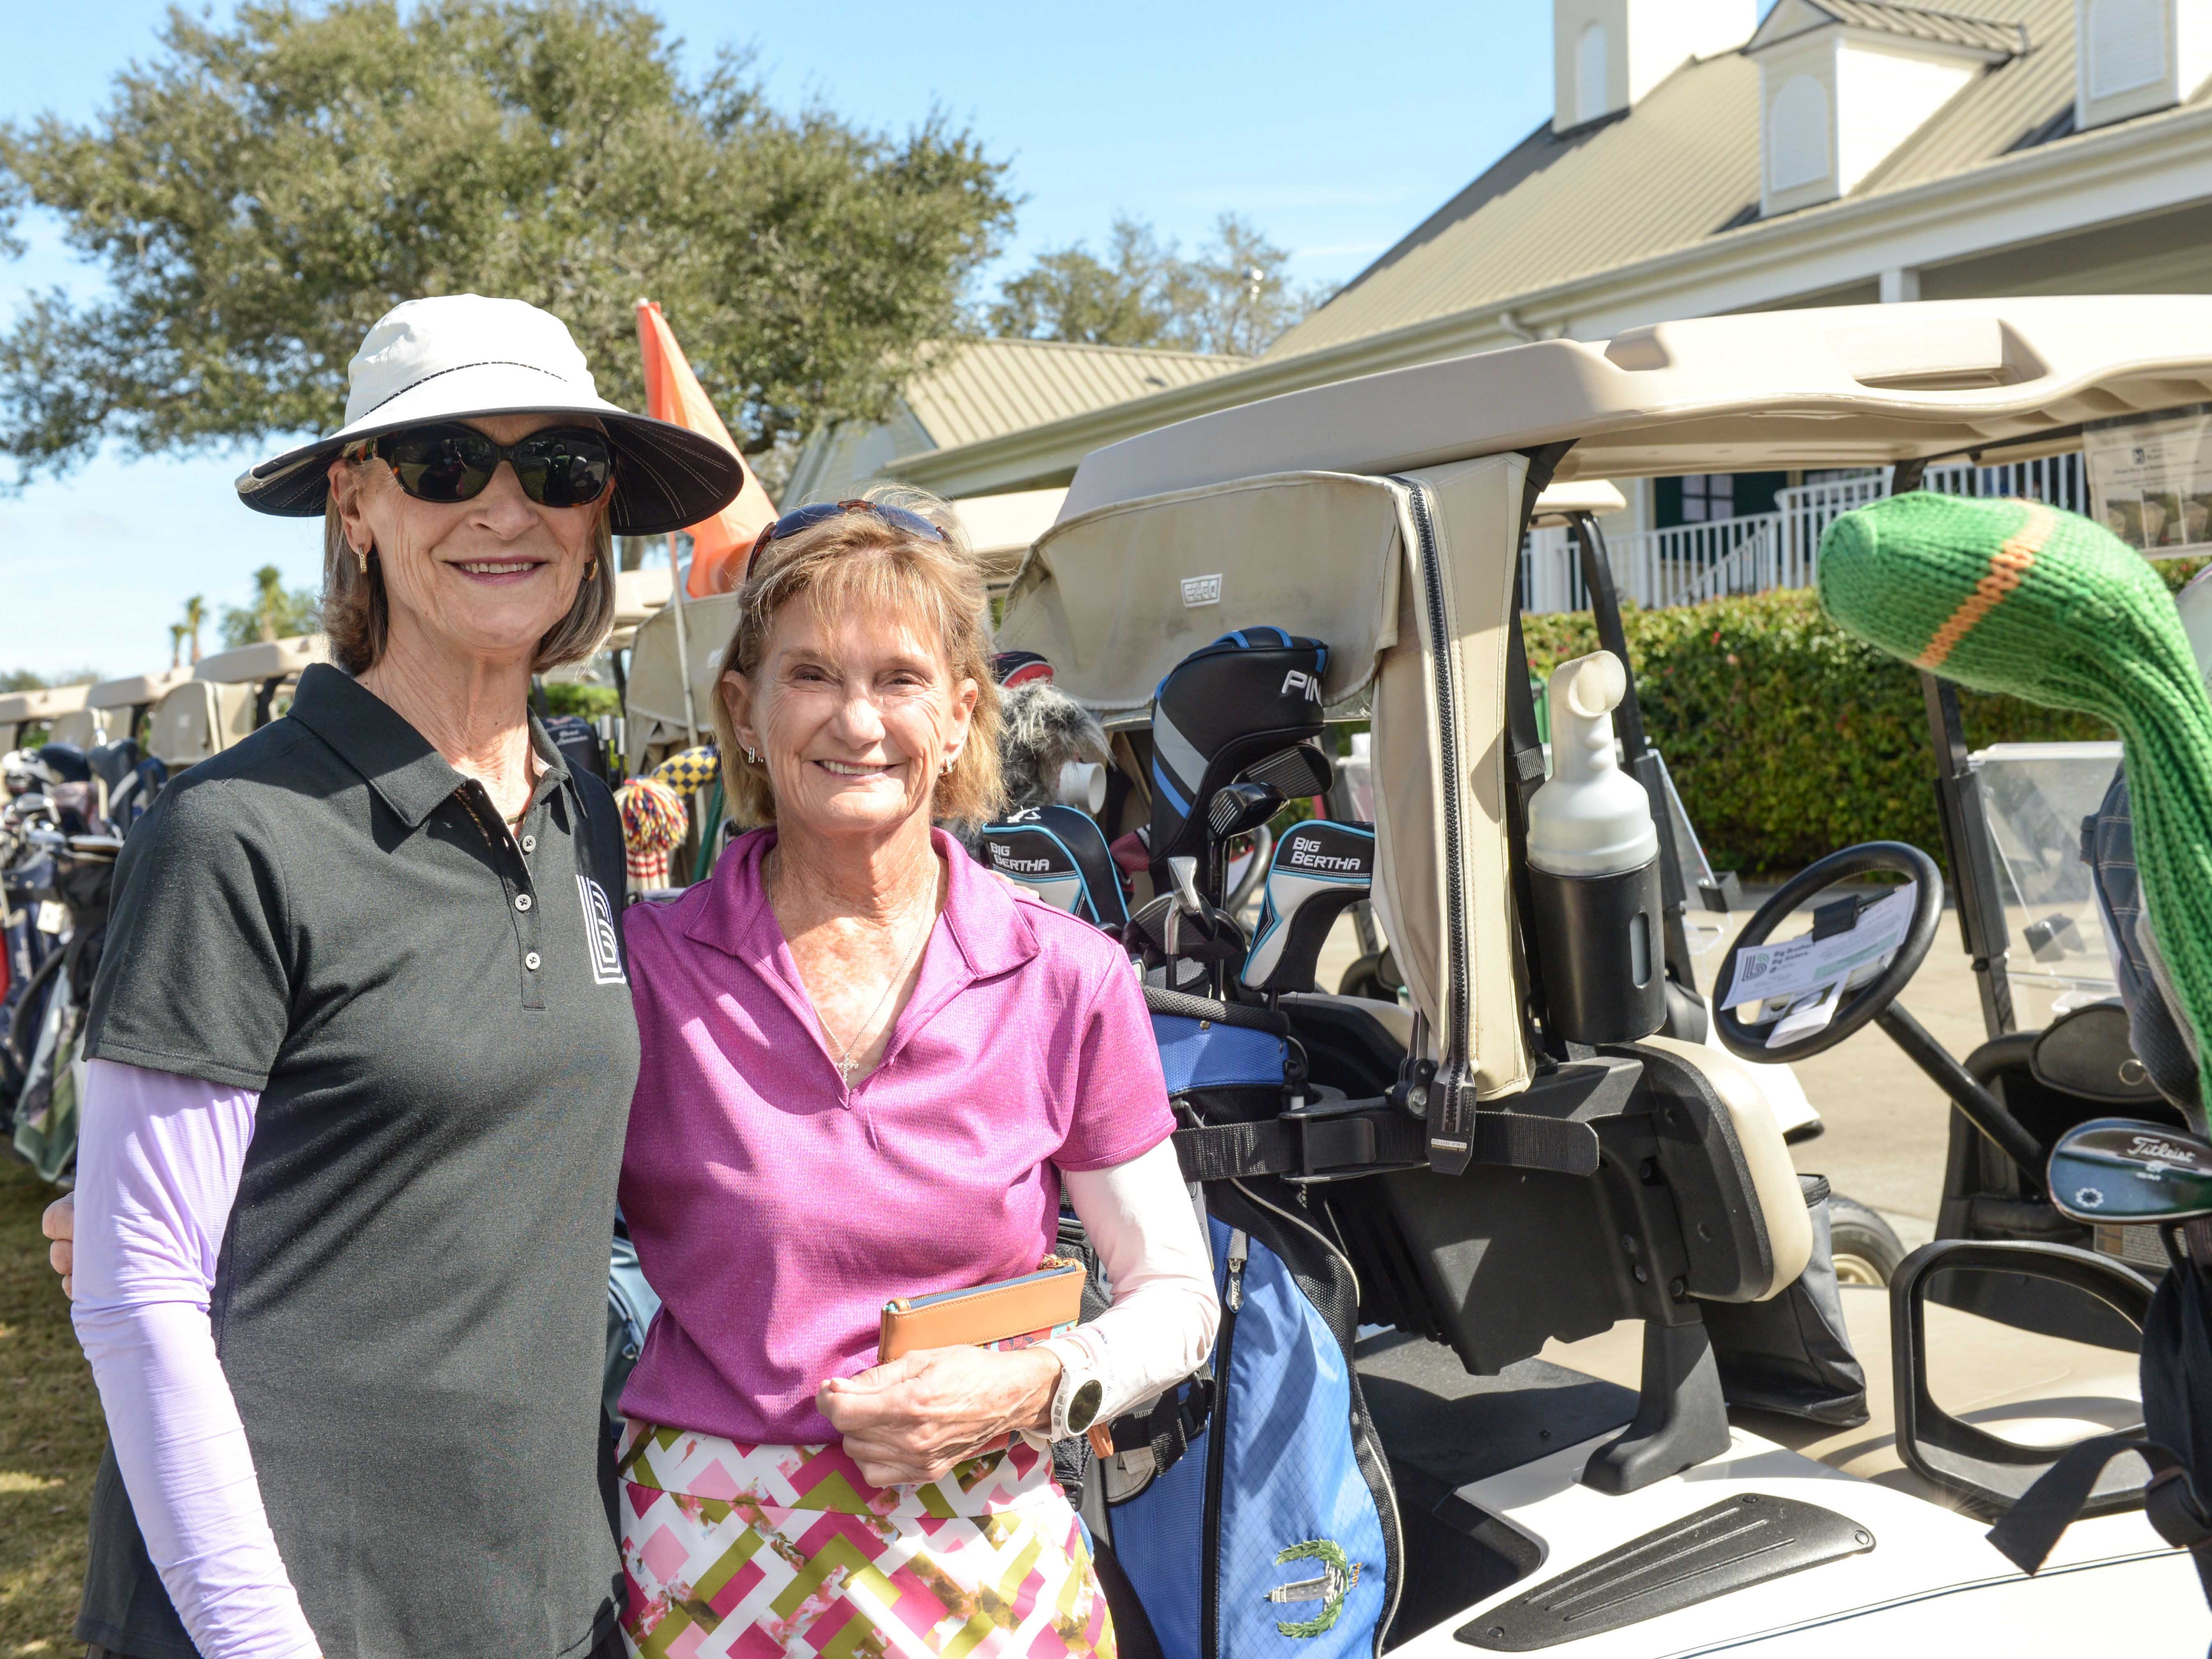 Volunteer and Event Committee Member Chris Smith with Nancy Sullivan at Hawk's Nest Golf Club for the Big Brothers Big Sisters Golf Tournament on Feb. 4.